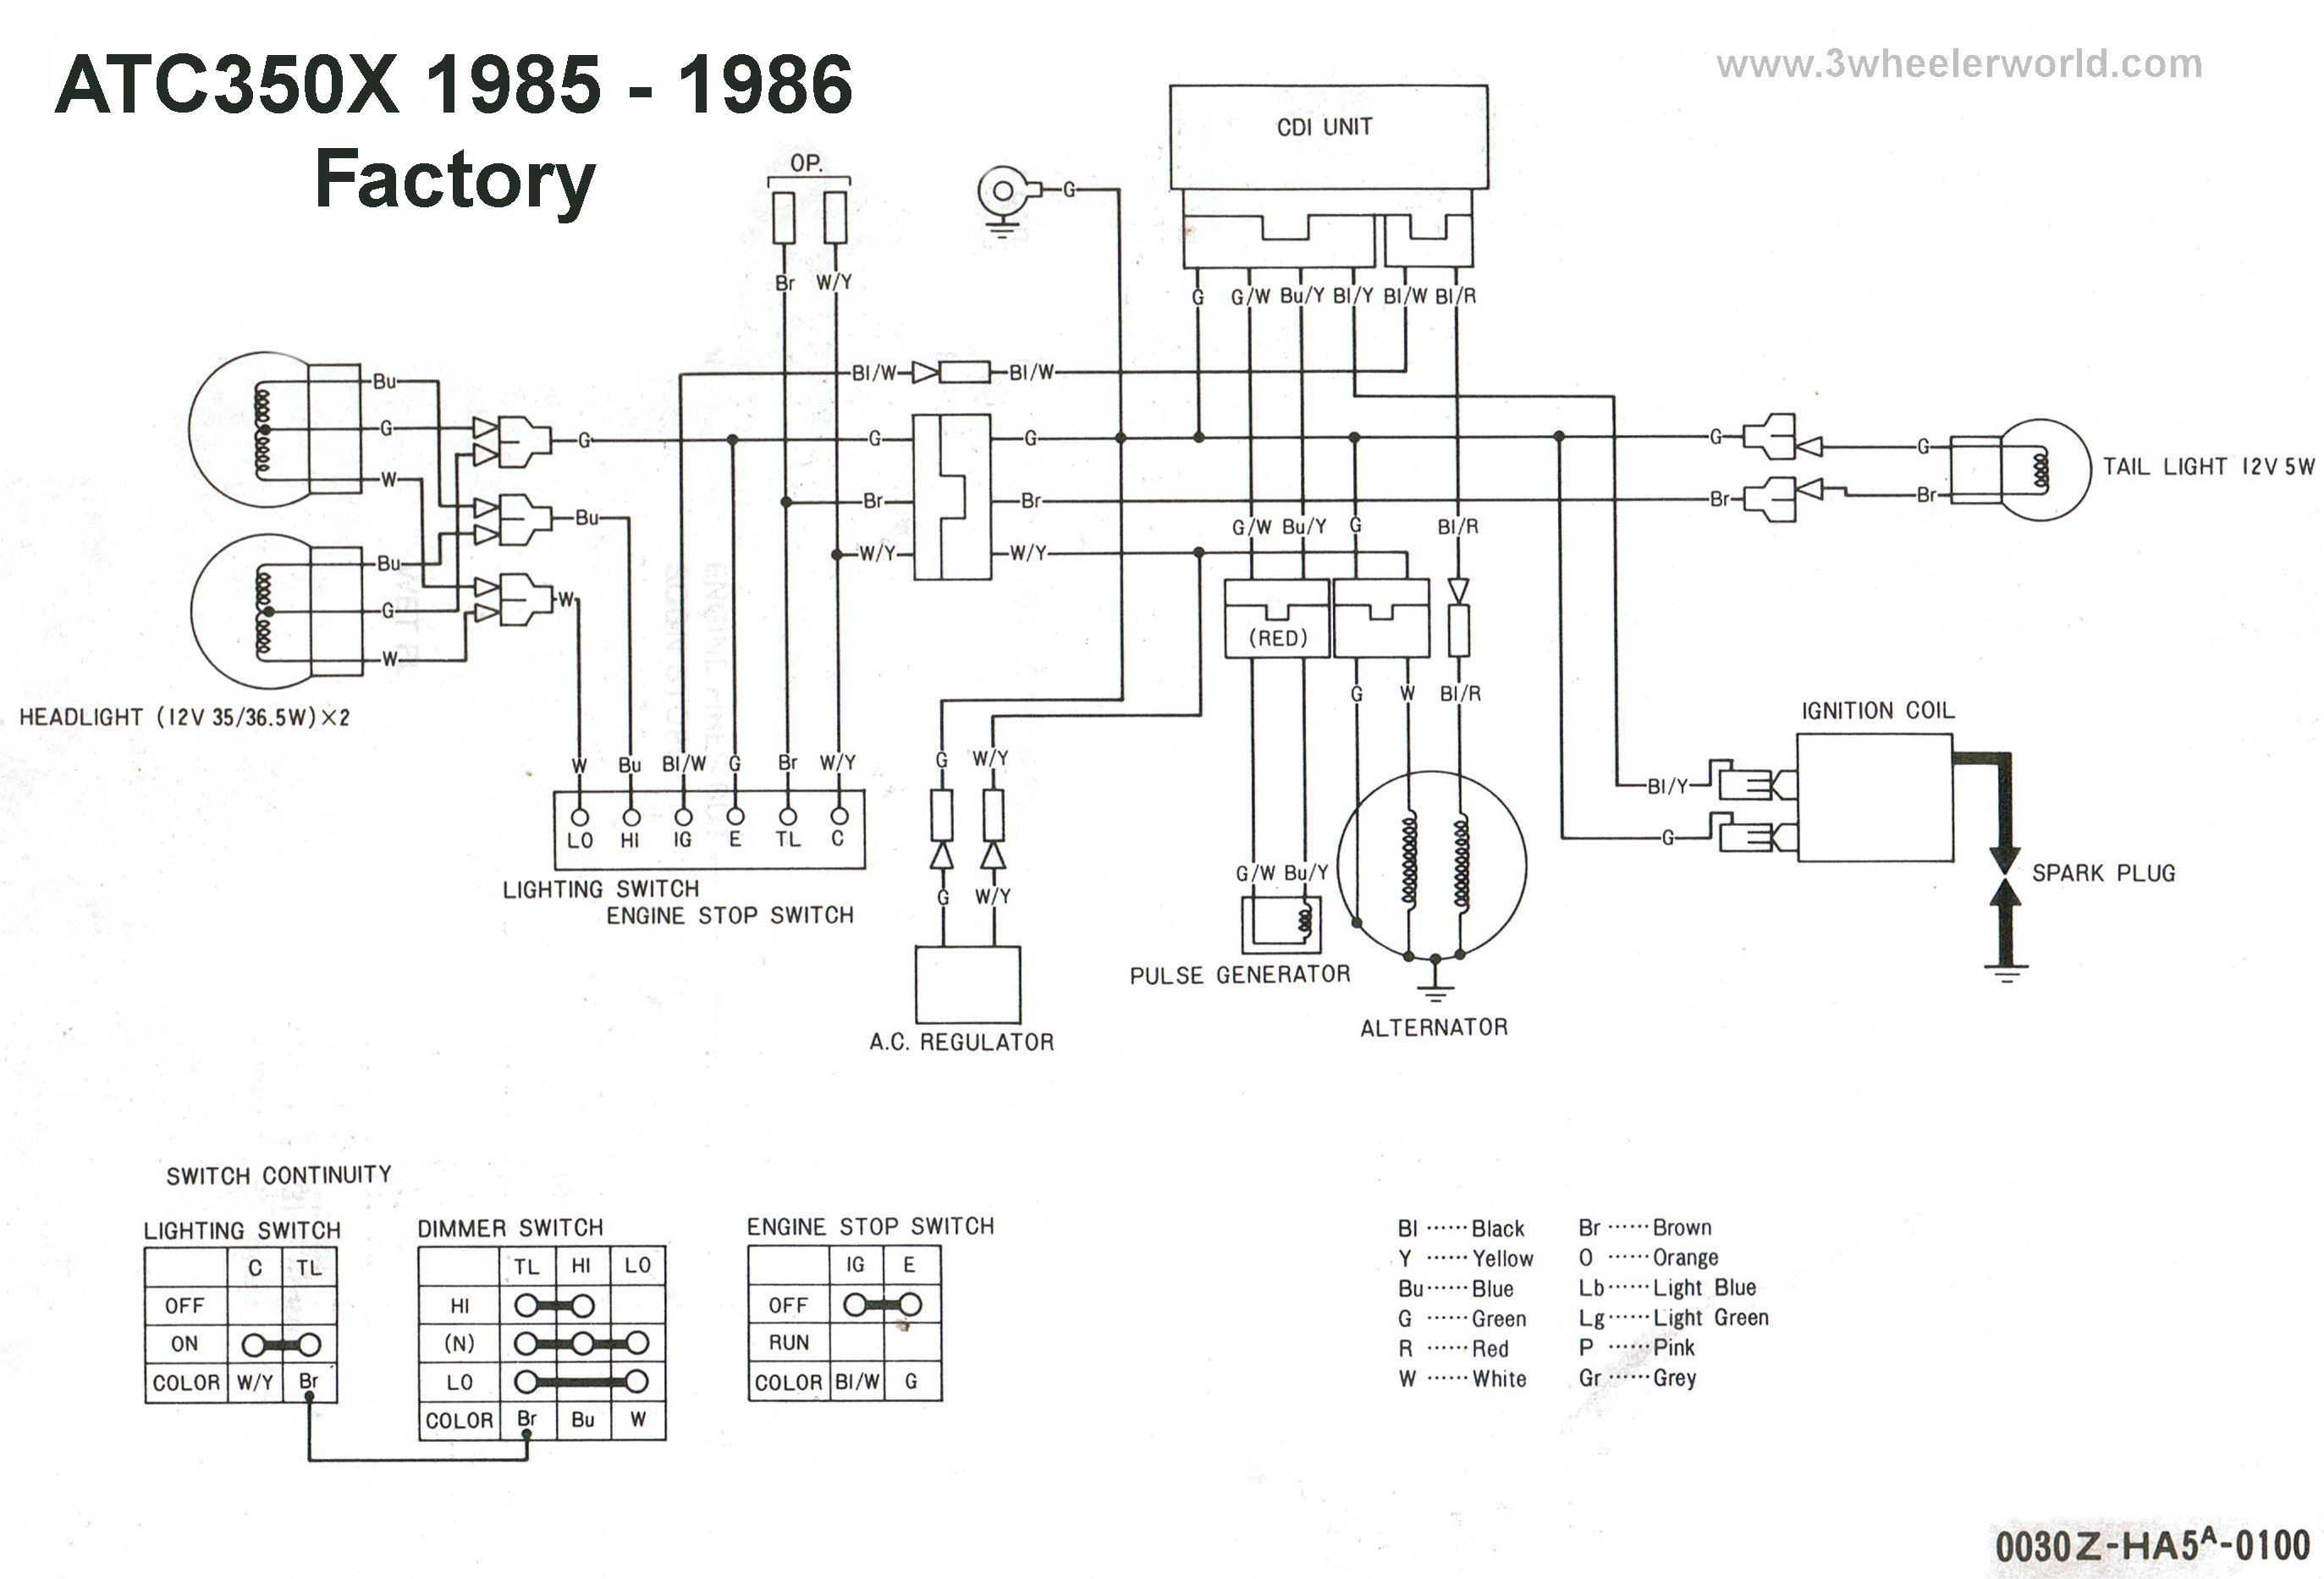 ATC350Xx85Thru86 honda 250x wiring diagram on honda download wirning diagrams 1998 honda fourtrax 300 wiring diagram at crackthecode.co